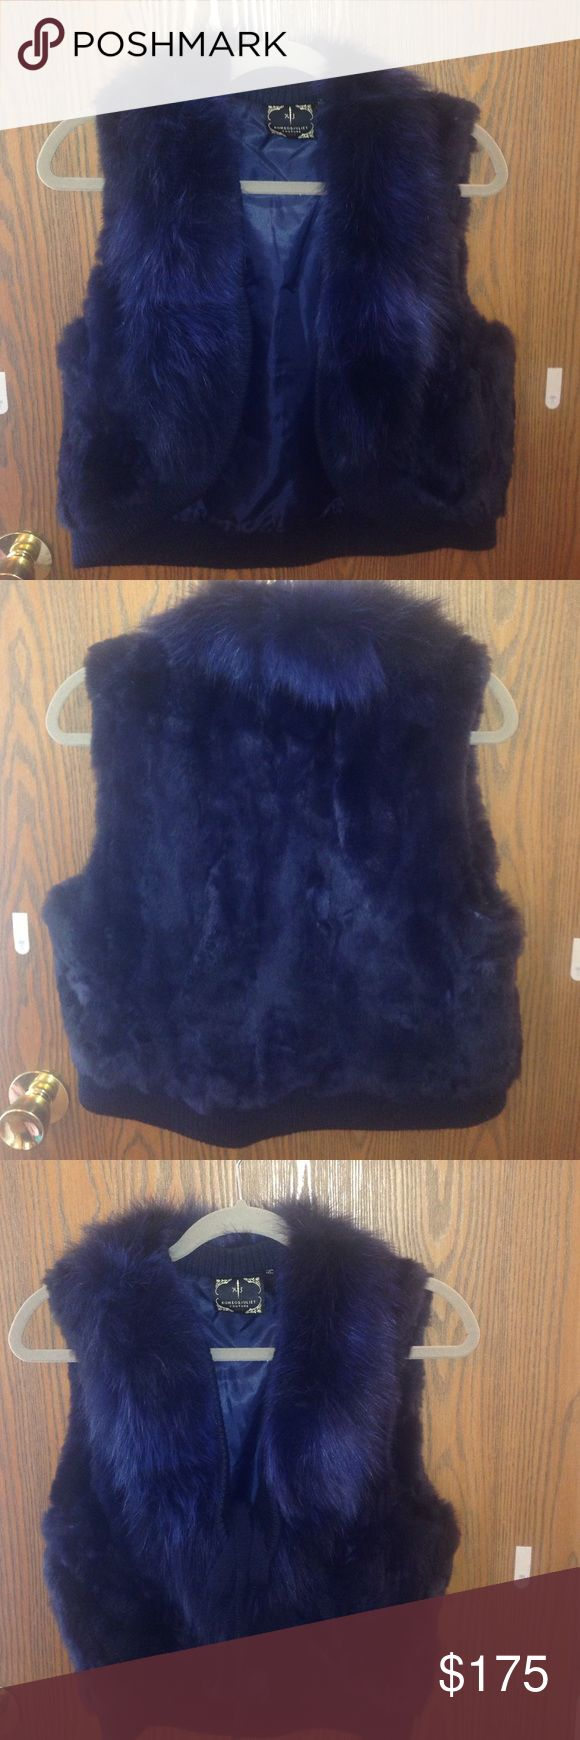 """Navy Blue Rabbit Vest with Fox Collar💎 Couture Romeo & Juliet Luxe fur vest. This one ladies is one of my favs!!! It compliments everything! Look chic with a pair of jeans, perhaps pair it with a pencil skirt and chambray shirt... I've even worn this beauty with a jogging suit 😬 This is a purchase you won't regret!!   21"""" long and 17.5"""" wide.  The Vest has two ribbons that you can tie in the front or leave hanging- totally up to you!! Romeo & Juliet Couture Jackets & Coats Vests"""